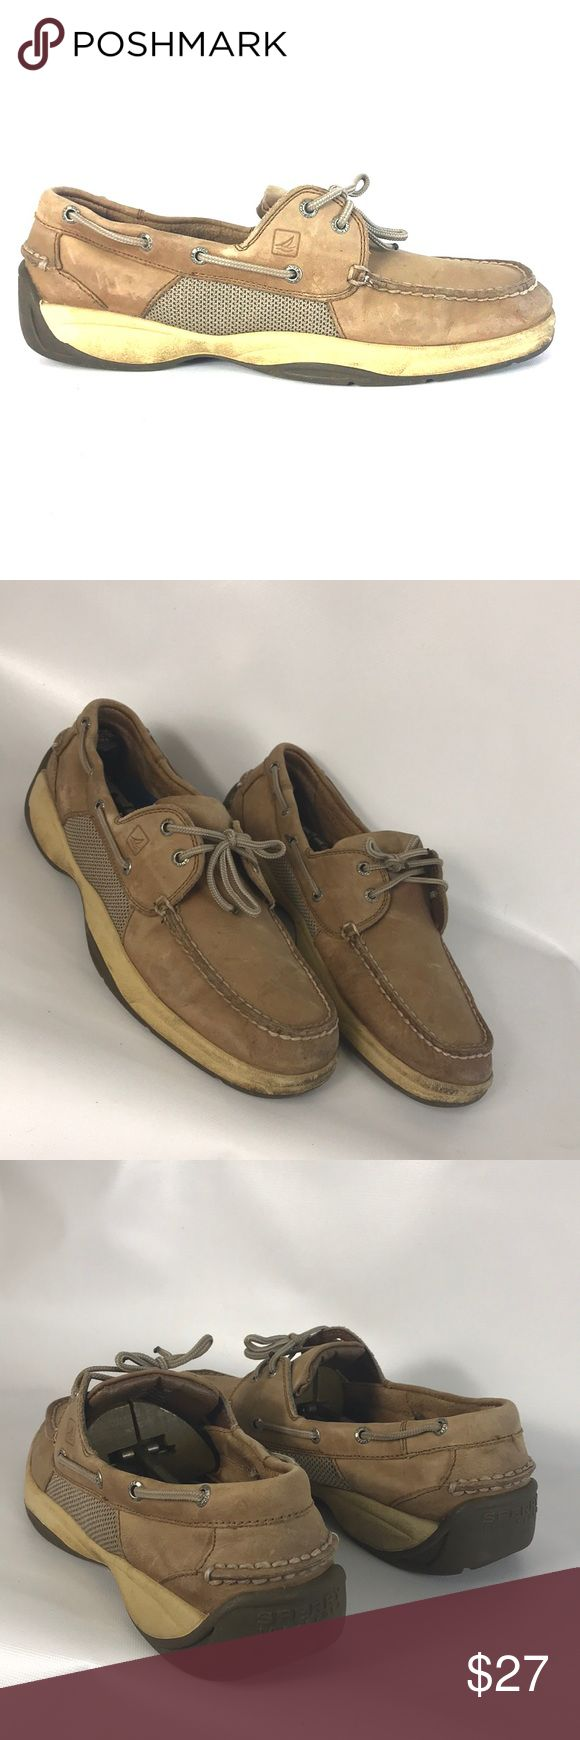 🎄SALE Sperry men size 11.5 M Condition 8/10, normal amount of scuffs around both shoes from normal wear, few stAins, other than that still in very good shape. If you have any questions or you want to request more pictures, don't hesitate to ask me. Thank you 🙏🏼 Sperry Top-Sider Shoes Boat Shoes